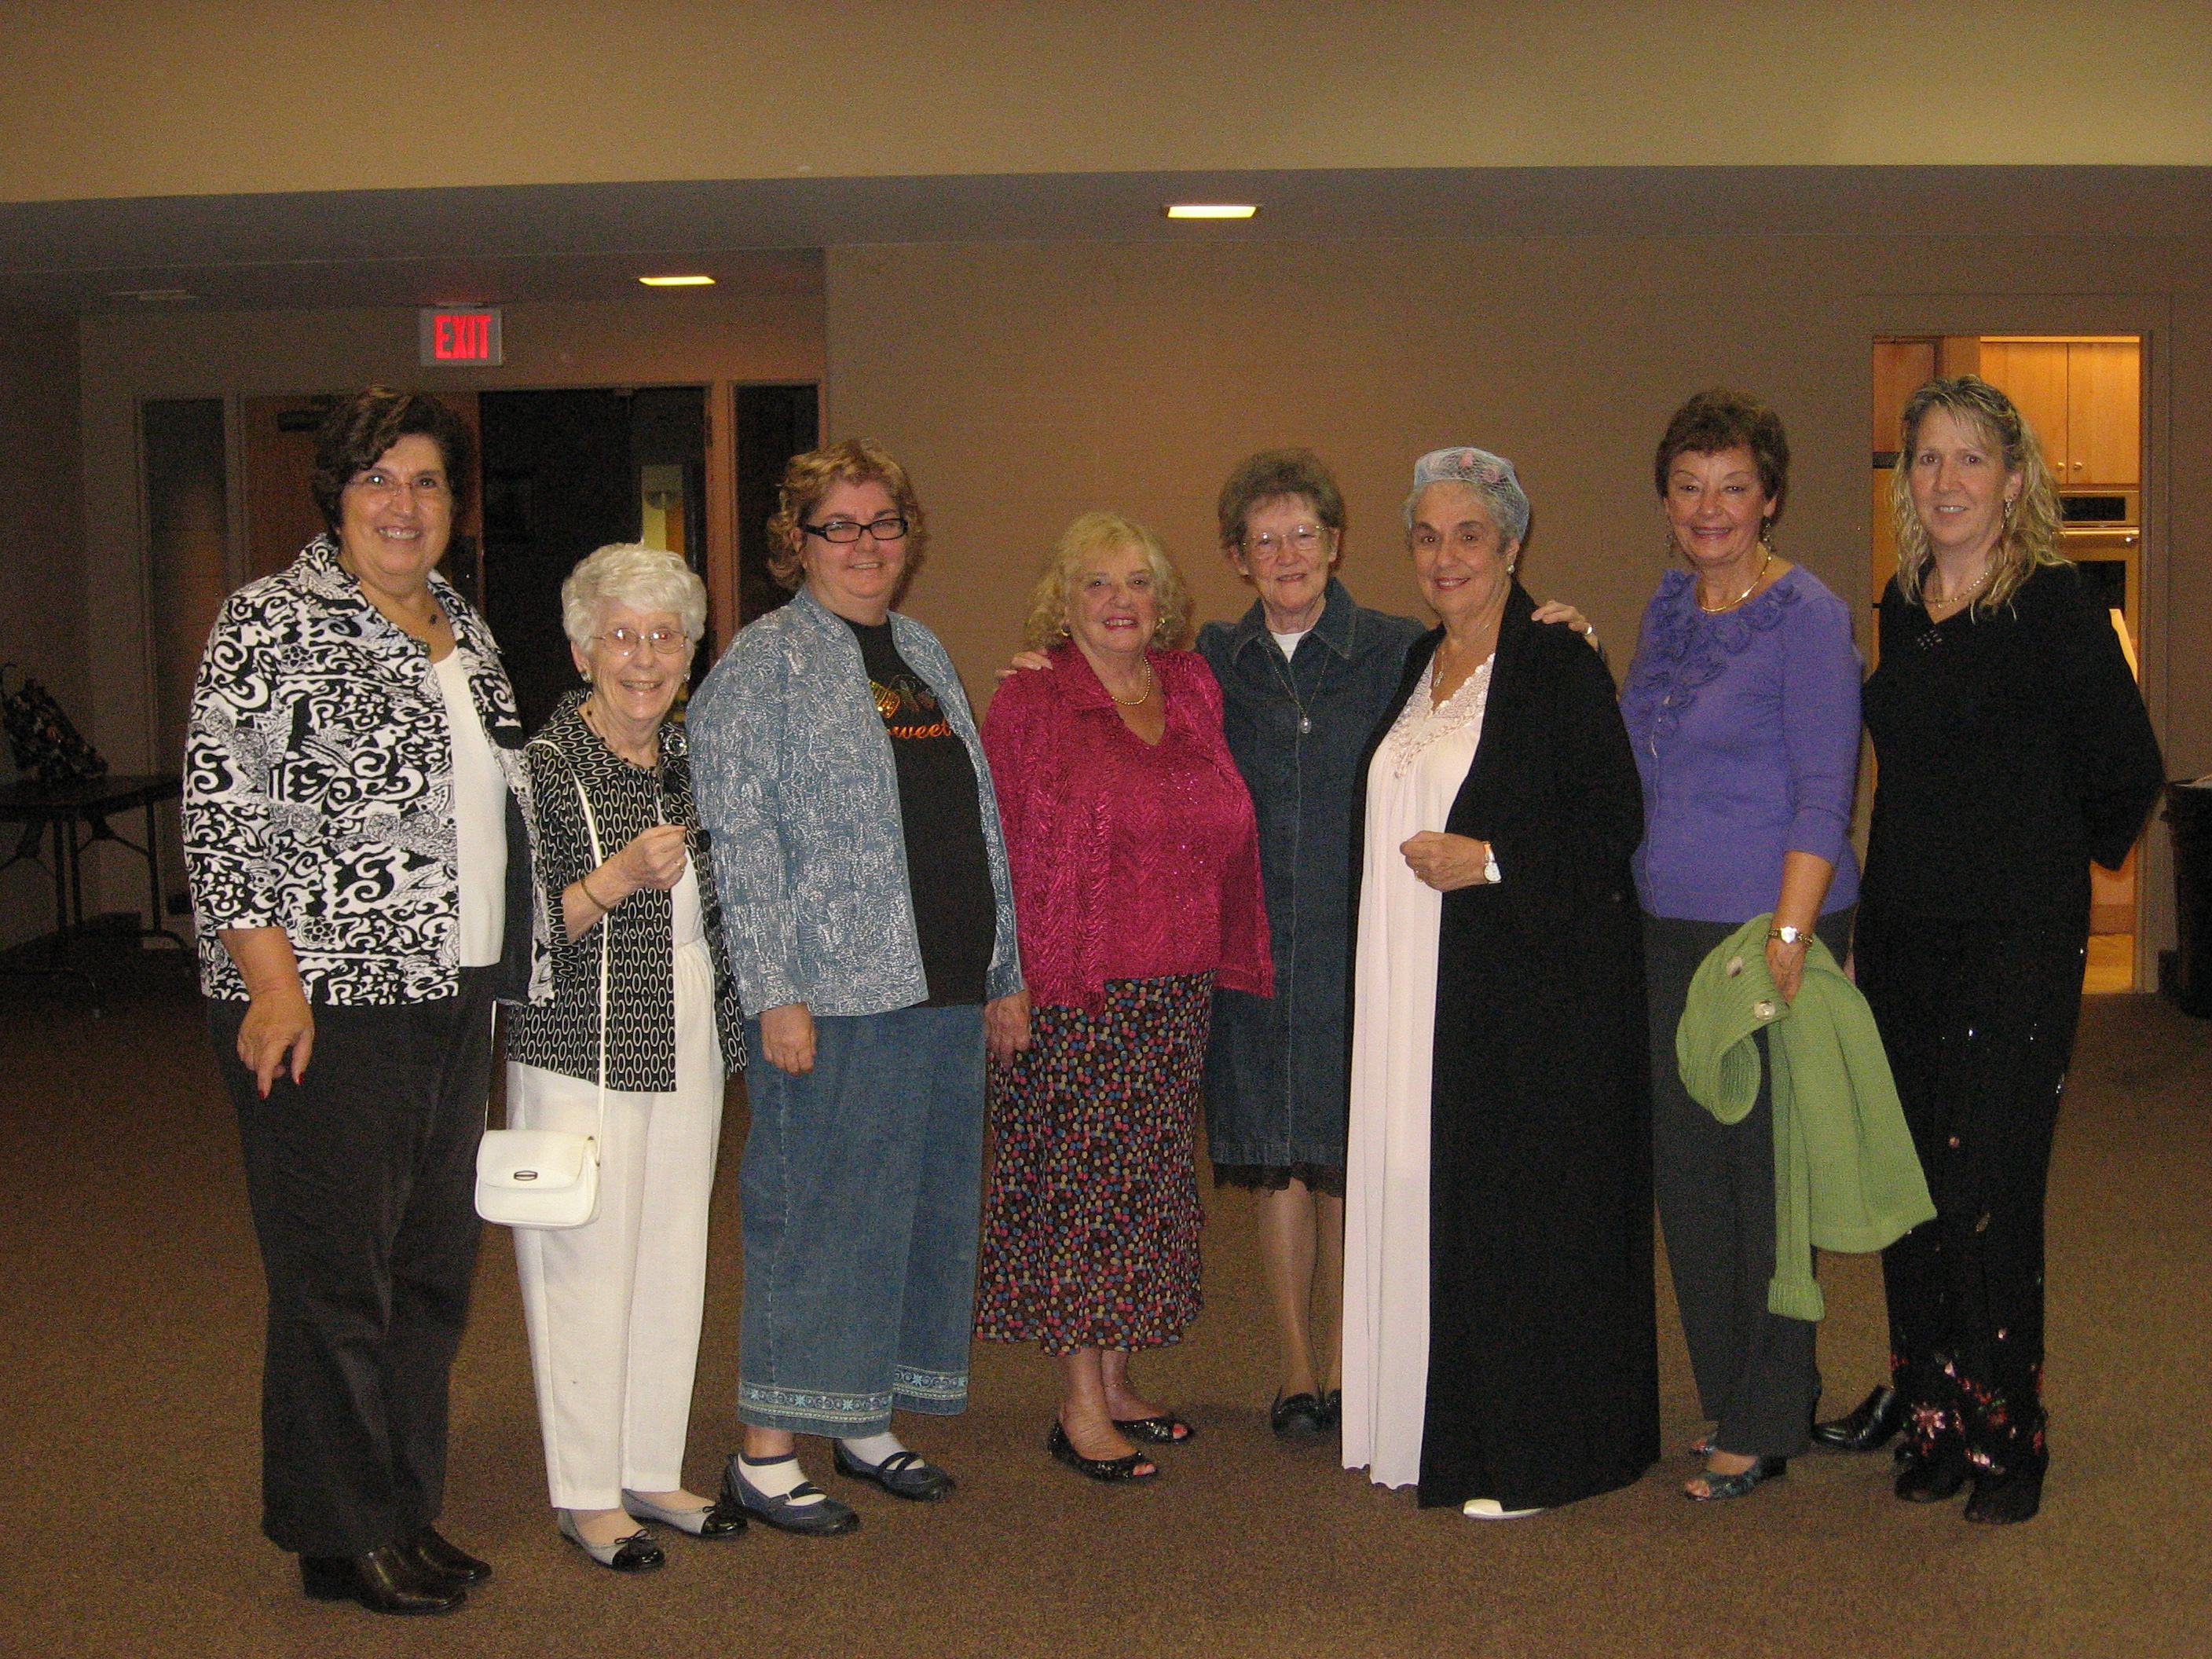 A BIG NIGHT FOR THE MARTHA MARY GUILD